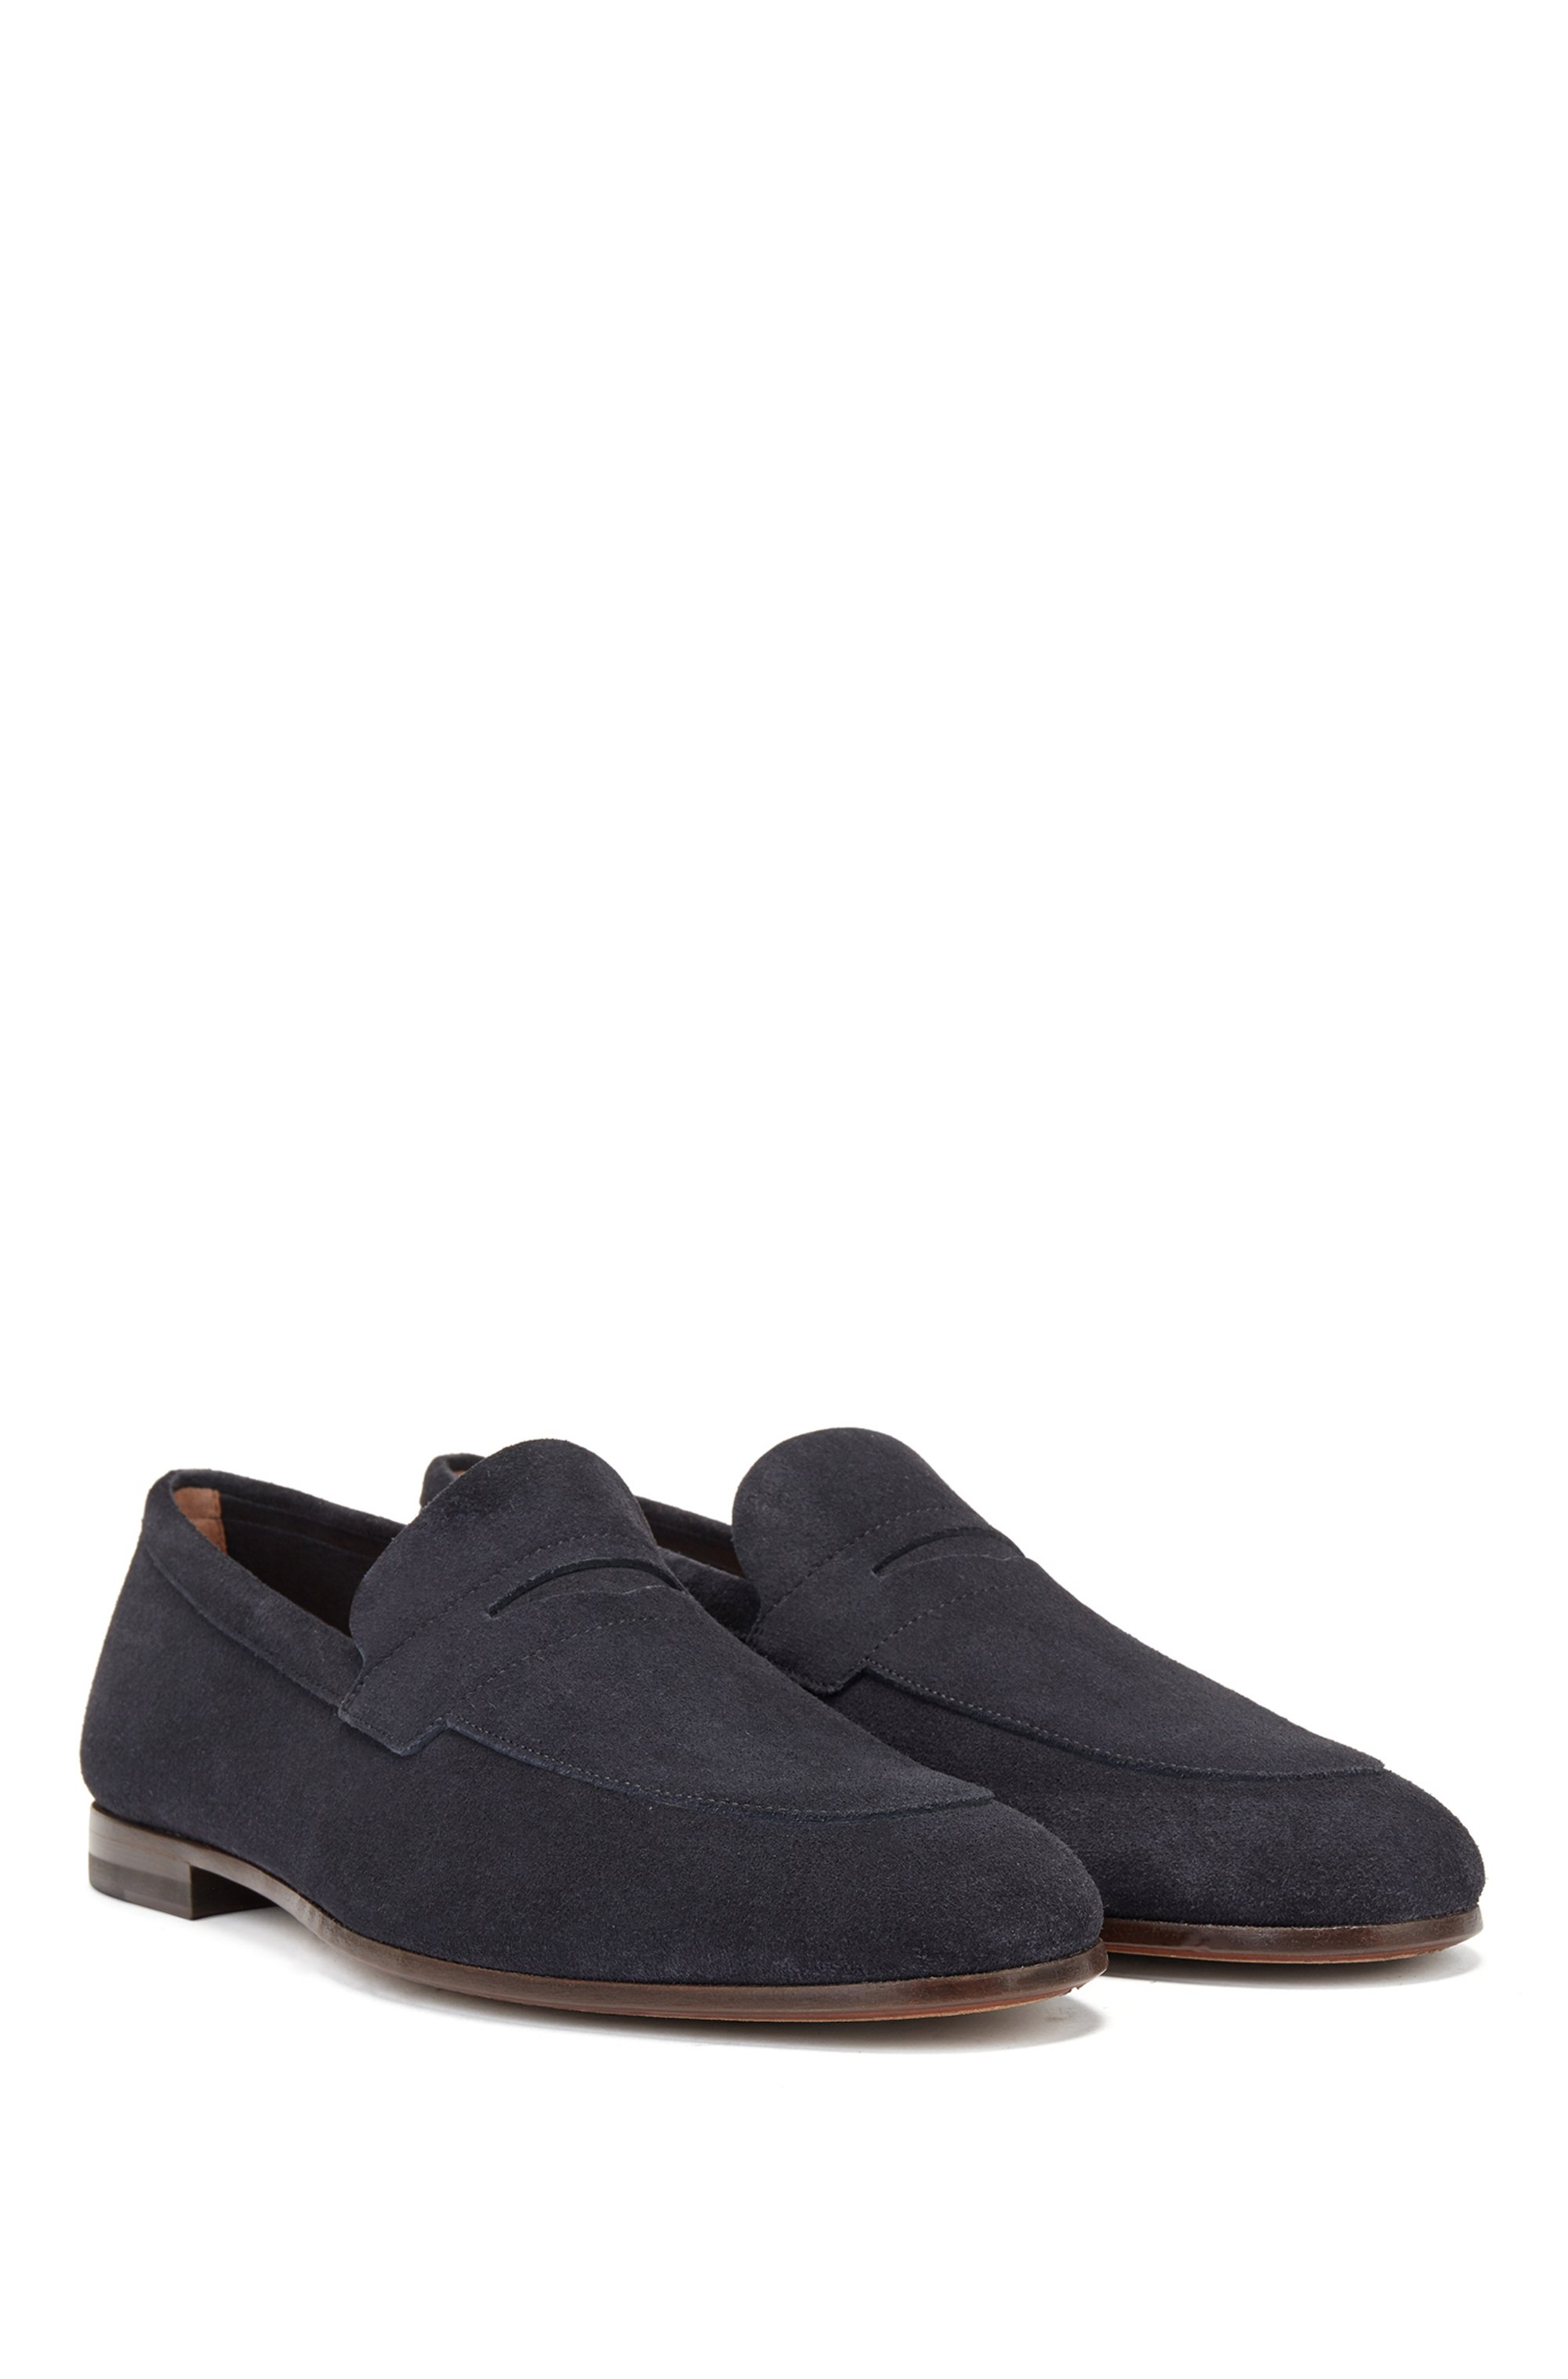 Italian-made suede loafers with penny trim